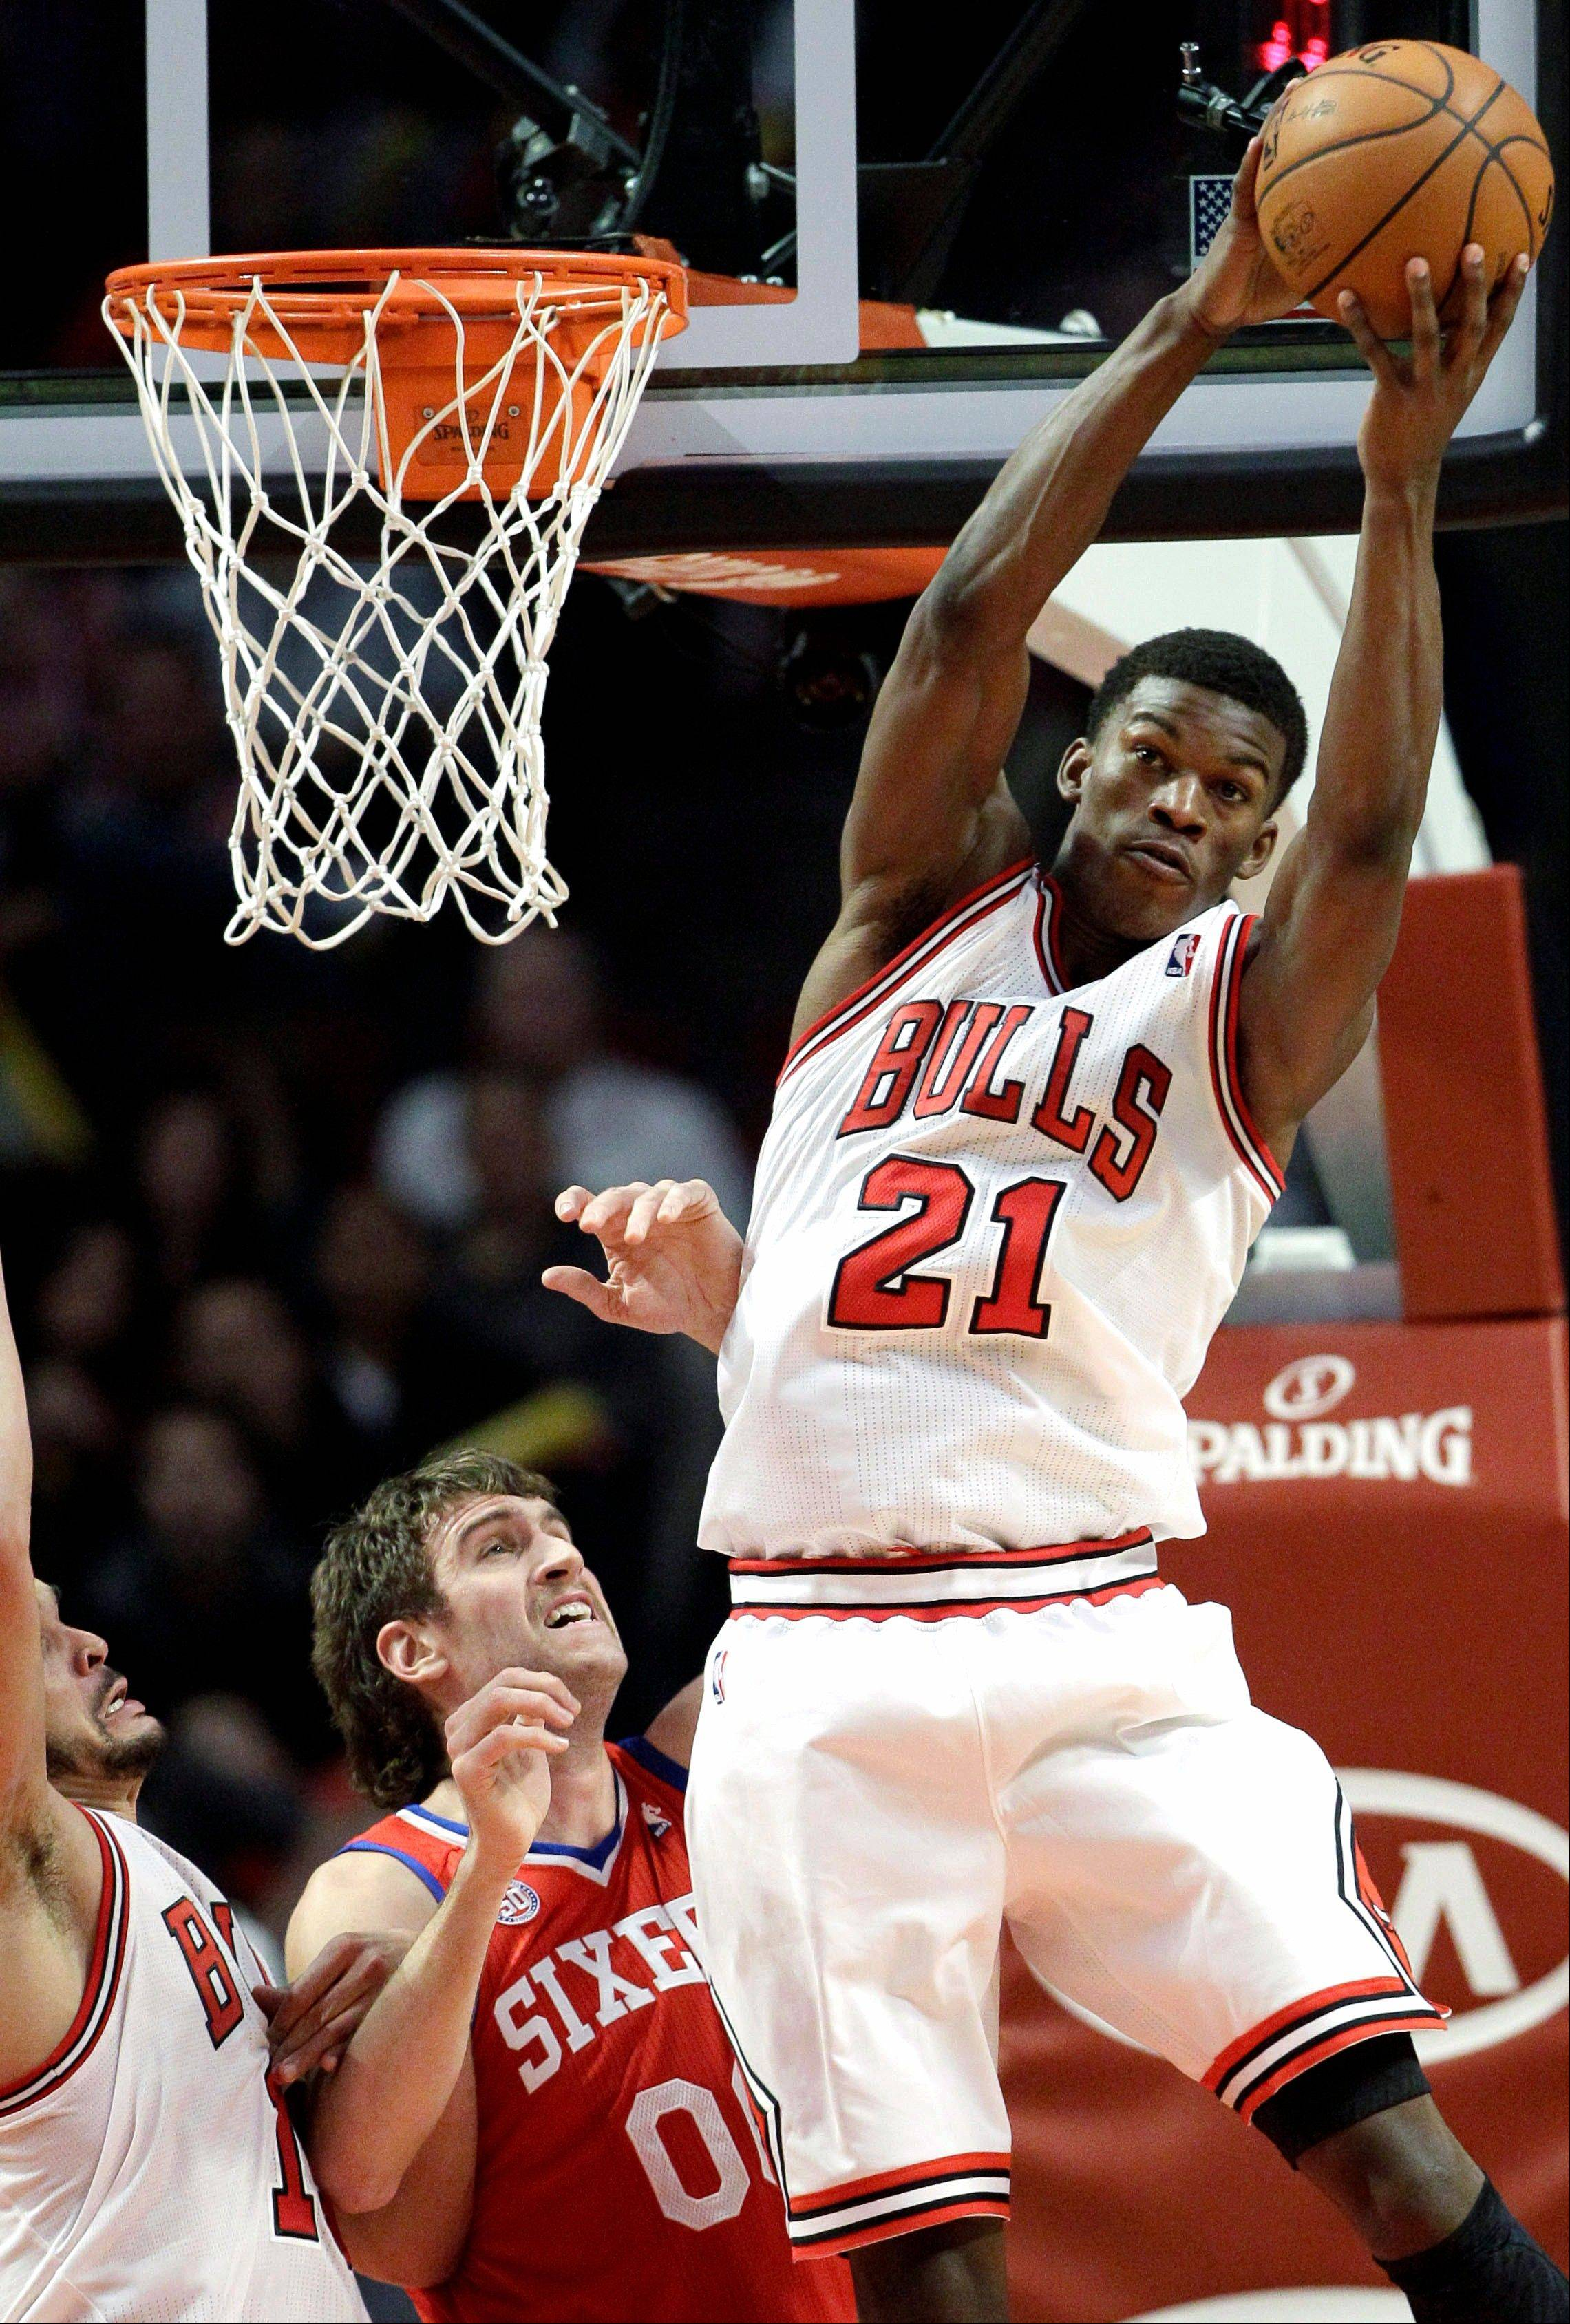 Jimmy Butler said he�s comfortable coming off the bench and giving the Bulls a spark with teammate Taj Gibson.